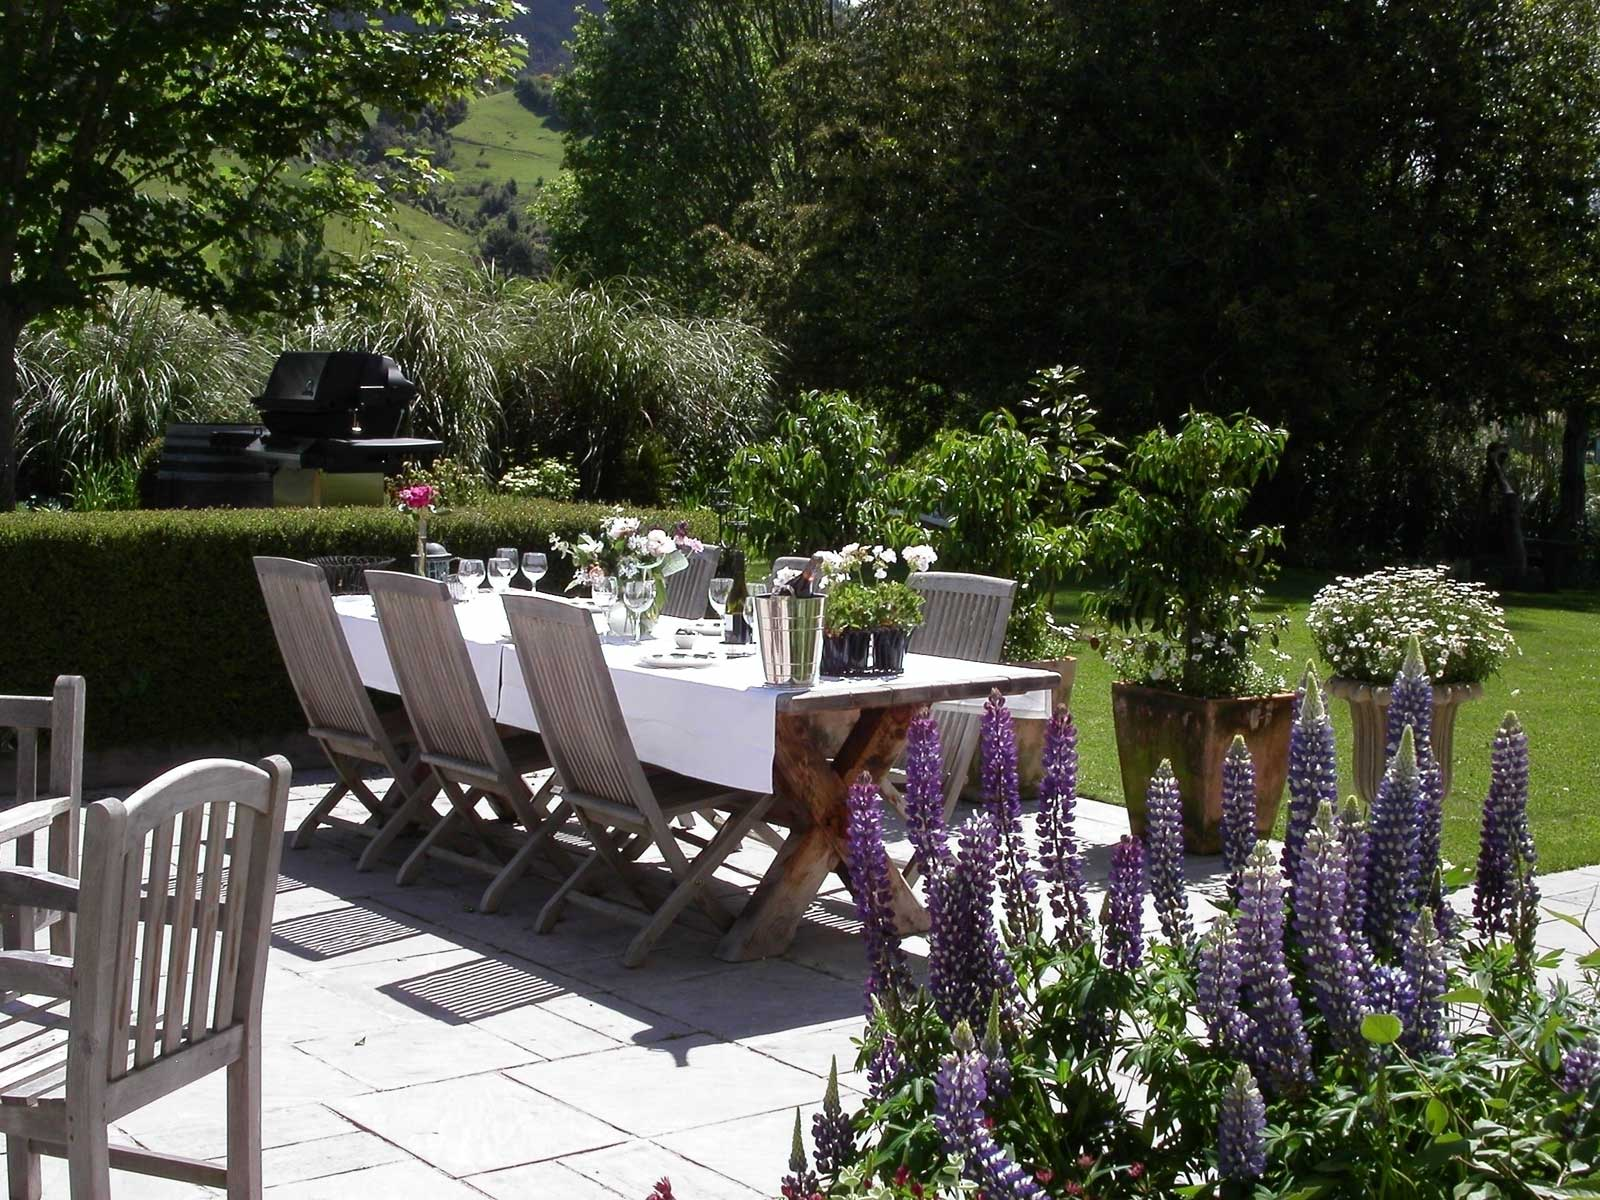 Casual dining outdoors at Edenhouse - pic courtesy Edenhouse